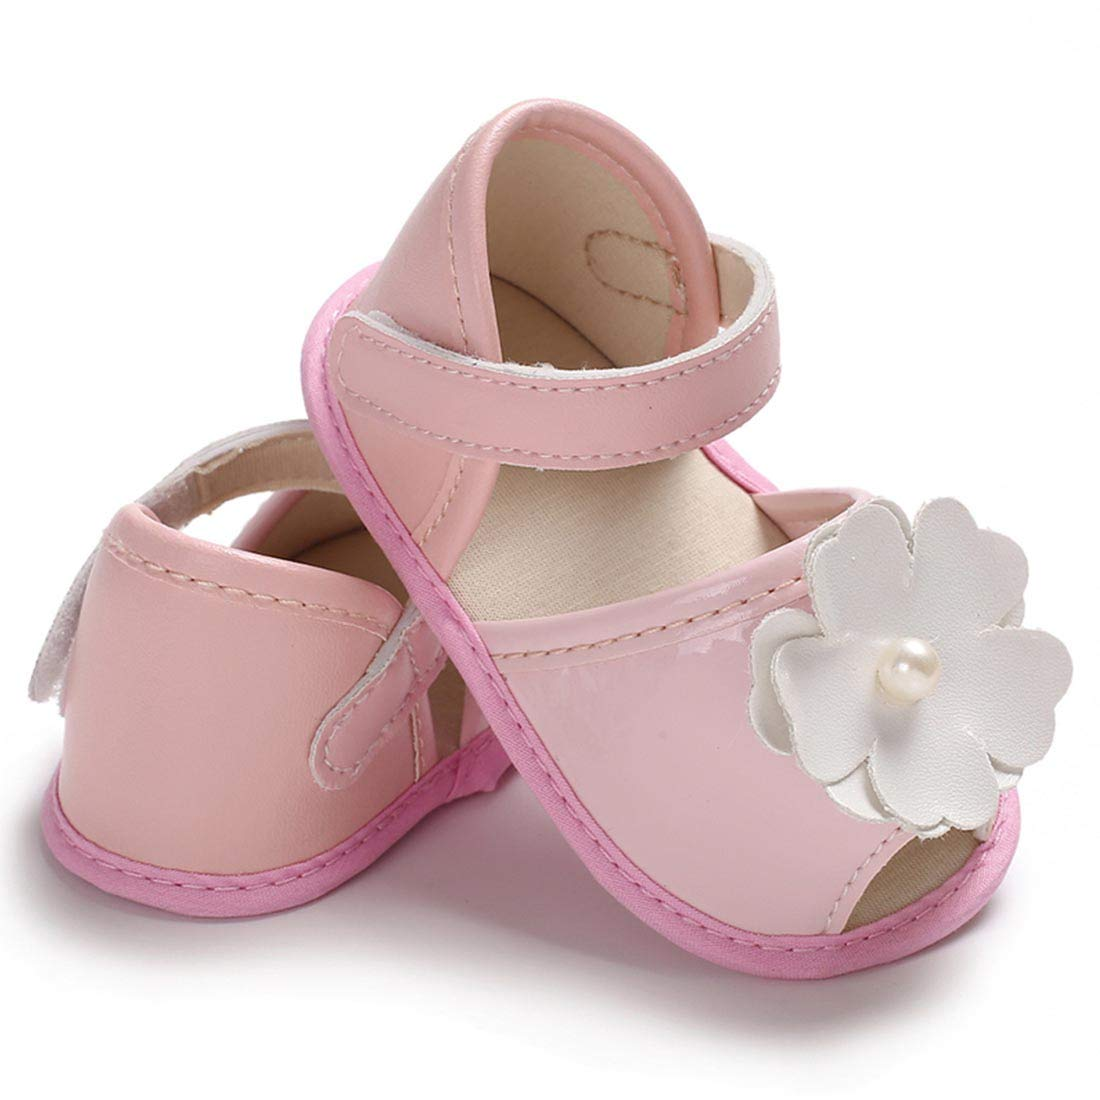 YIBLBOX Baby Girls Summer Open Toe Flower Crib Shoes Infant Sandals First Walkers